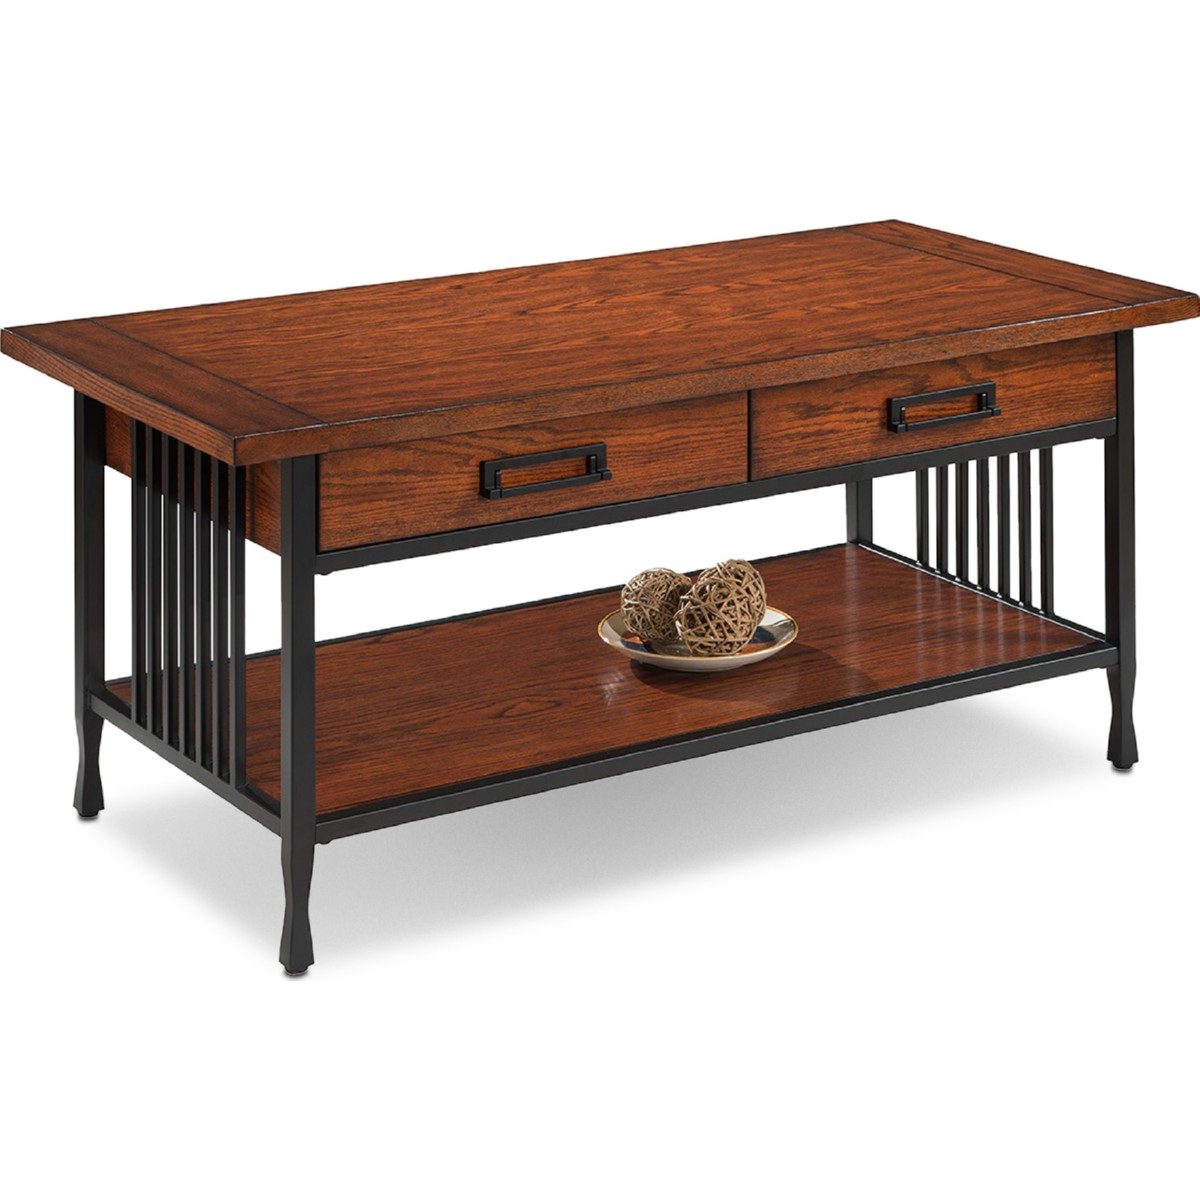 Linon Mission Coffee Table Images Rug Outlet Houston